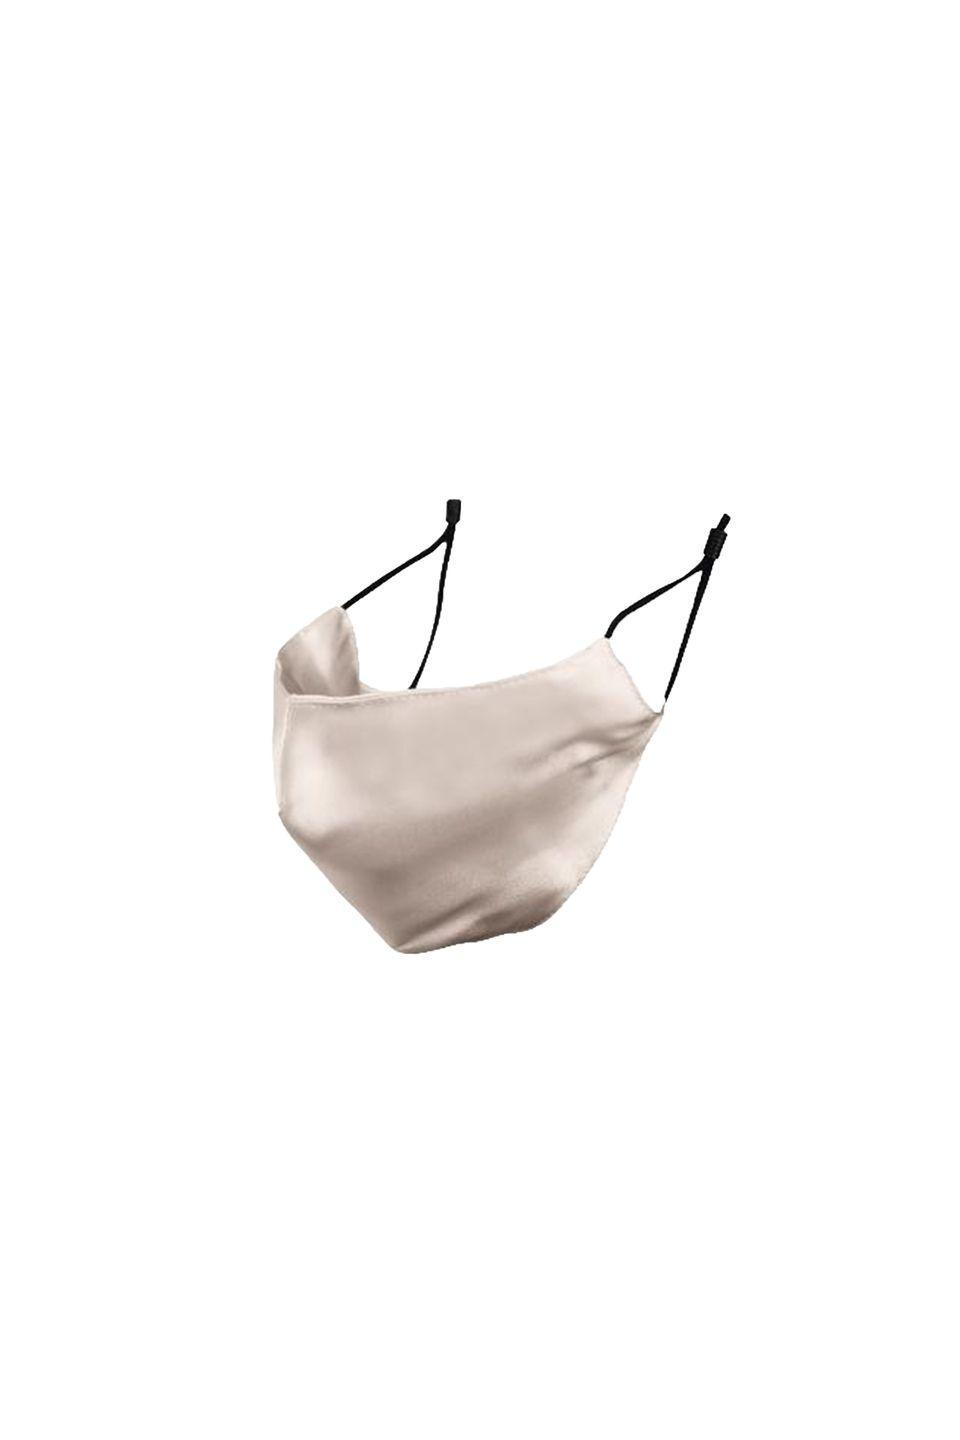 """<p><a class=""""link rapid-noclick-resp"""" href=""""https://facesilk.co.uk/products/fab-luxe-silk-face-mask-french-rose?pr_prod_strat=copurchase&pr_rec_pid=5581134823587&pr_ref_pid=5580971147427&pr_seq=uniform"""" rel=""""nofollow noopener"""" target=""""_blank"""" data-ylk=""""slk:SHOP NOW"""">SHOP NOW</a></p><p>Available in a range of neutral tones, this mask is great for simple comfort.</p><p>Silk face mask, £14, <a href=""""https://thebigsilk.com/products/silk-face-mask?variant=32341400092708"""" rel=""""nofollow noopener"""" target=""""_blank"""" data-ylk=""""slk:The Big Silk"""" class=""""link rapid-noclick-resp"""">The Big Silk</a></p>"""